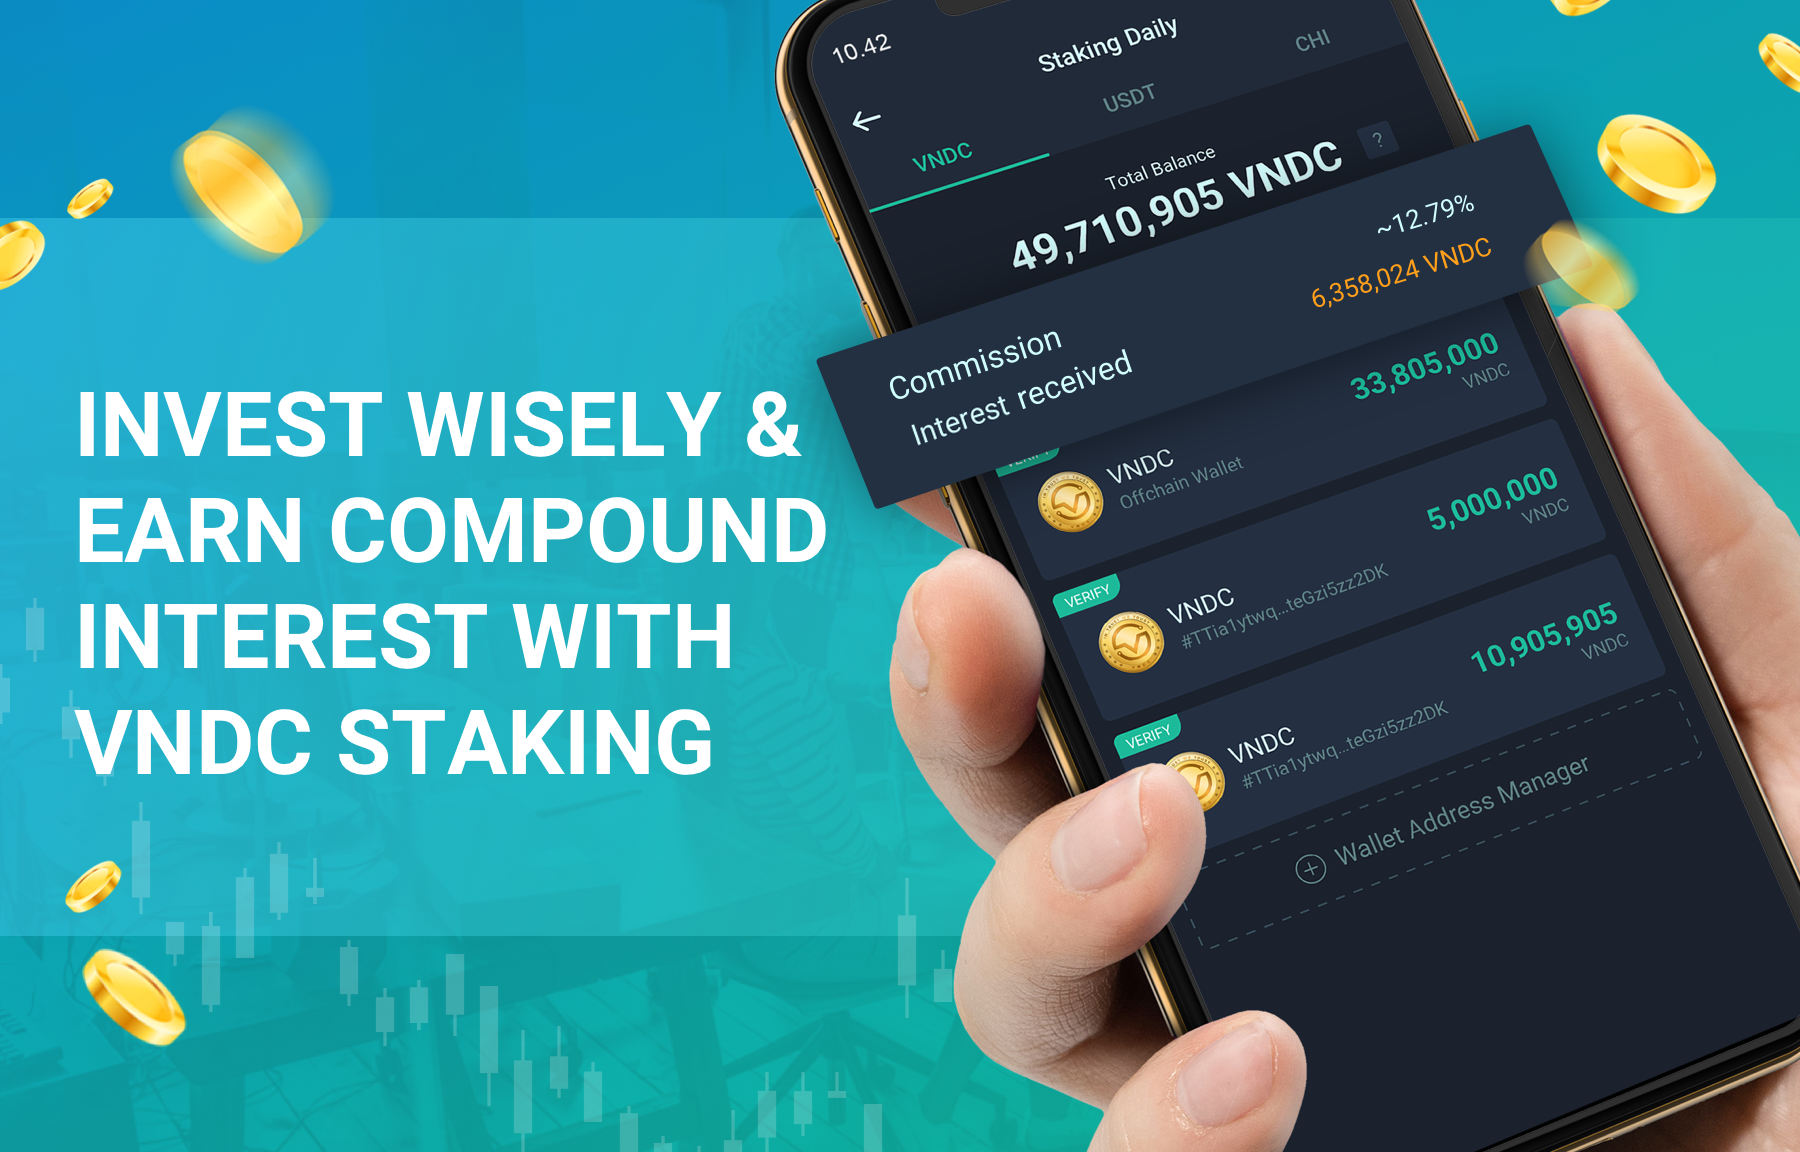 Invest wisely and earn compound interest with VNDC Staking